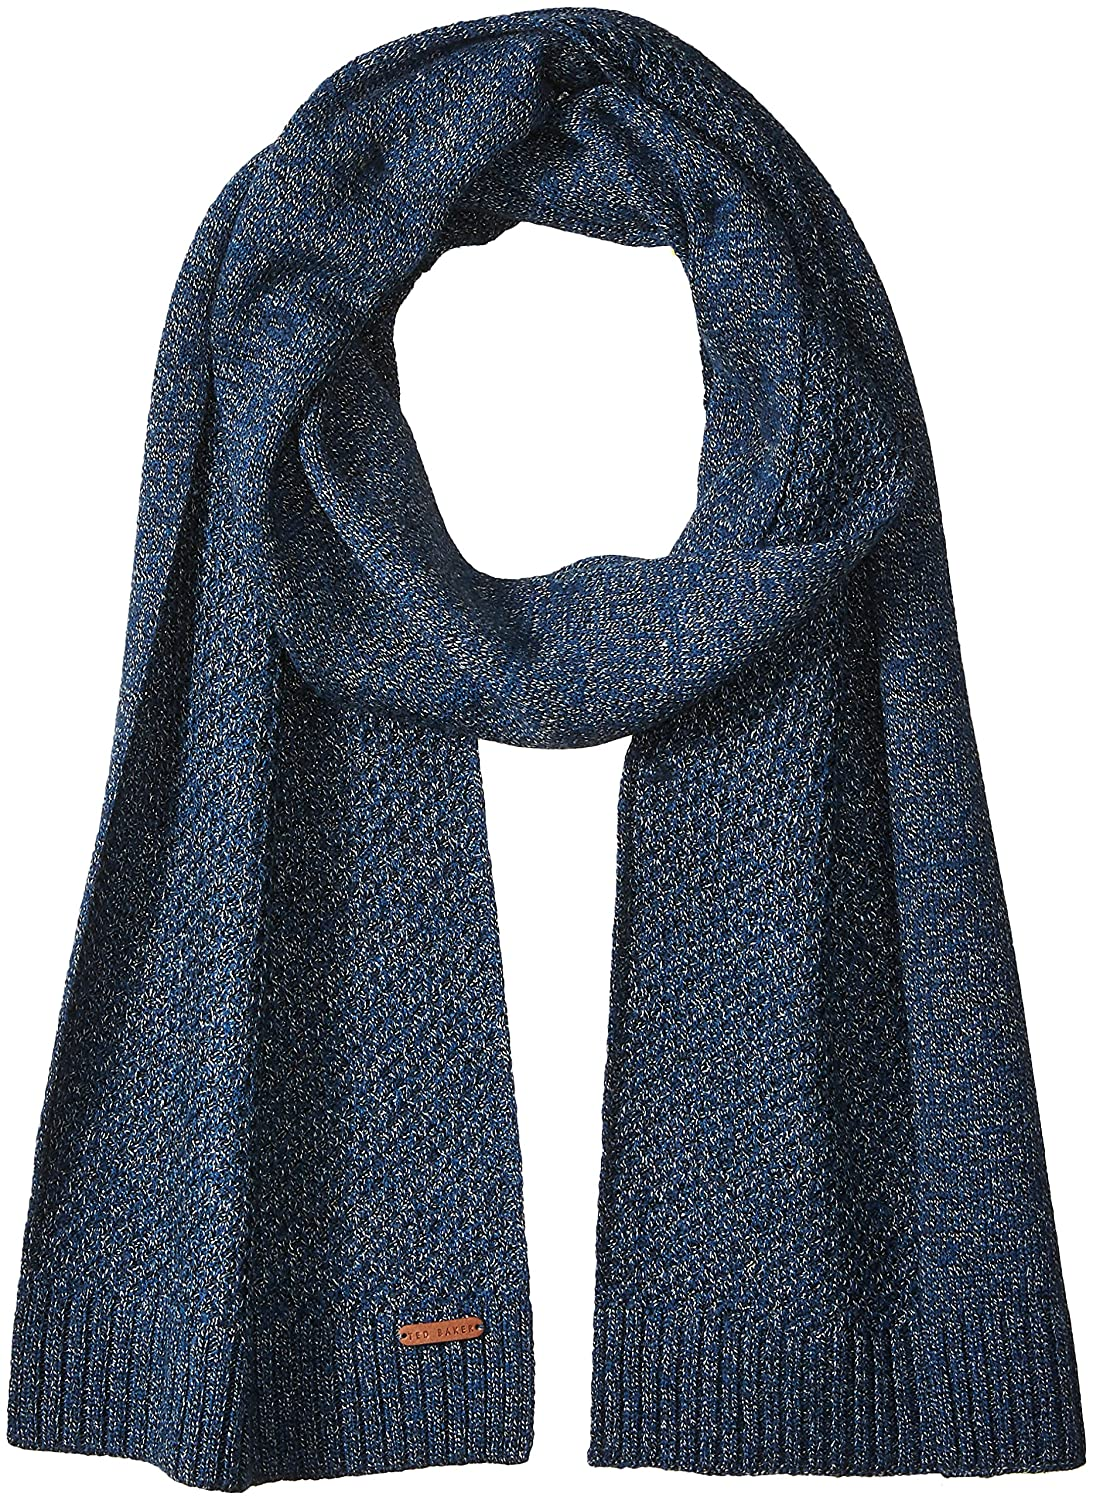 Ted Baker Men's Kapok Twisted Cable Knitted Scarf Charcoal One Size XA7M-XV16-KAPOK